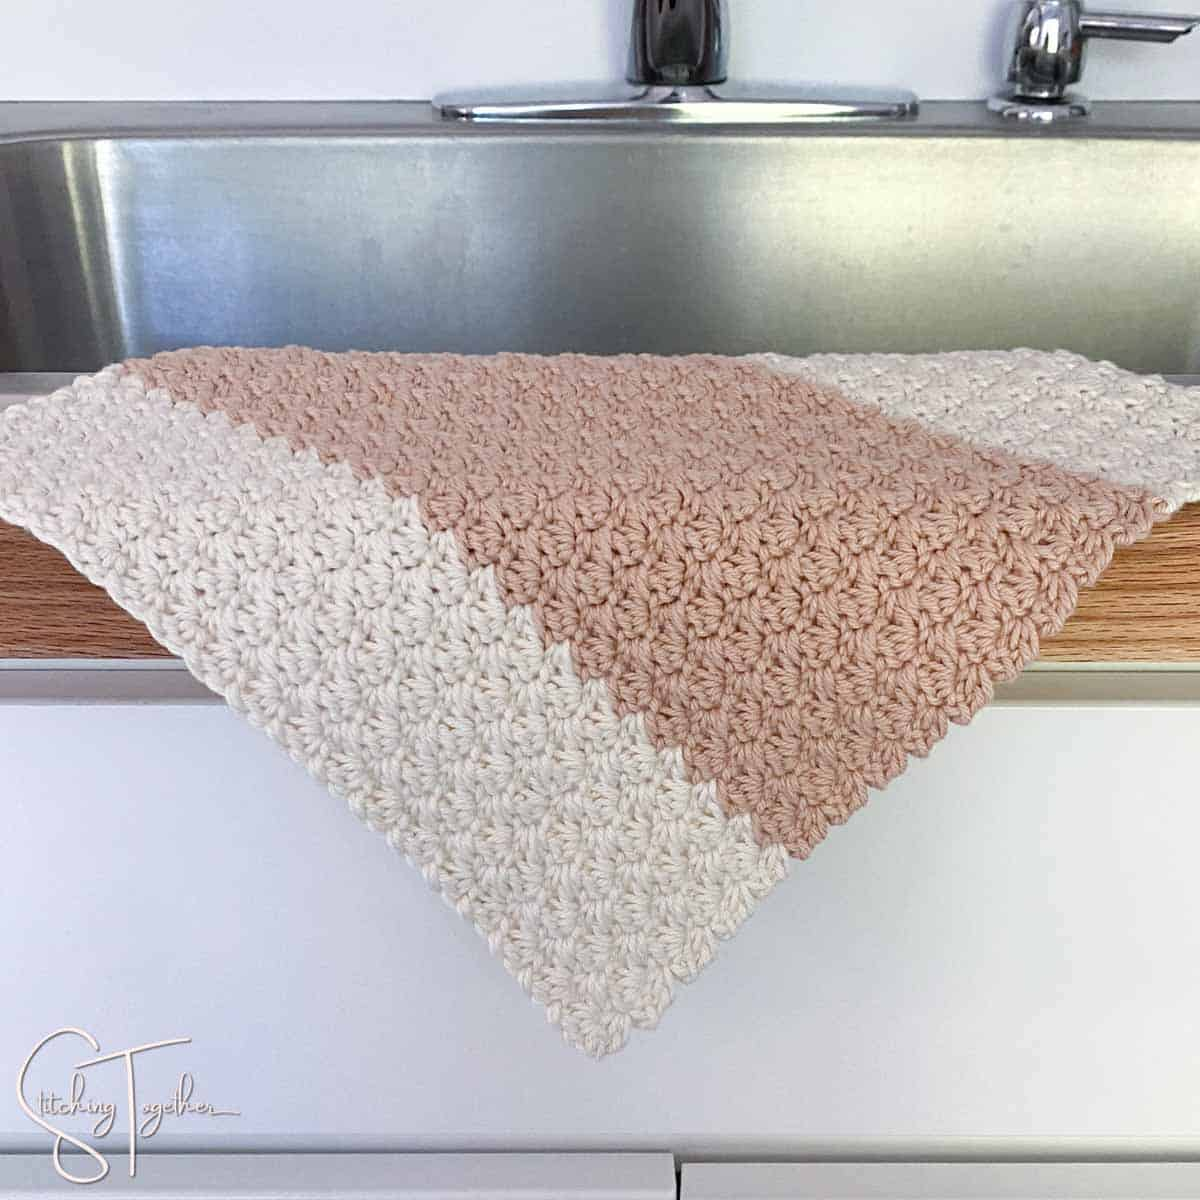 one crochet dishcloth suzette stitch draped on the side of a sink